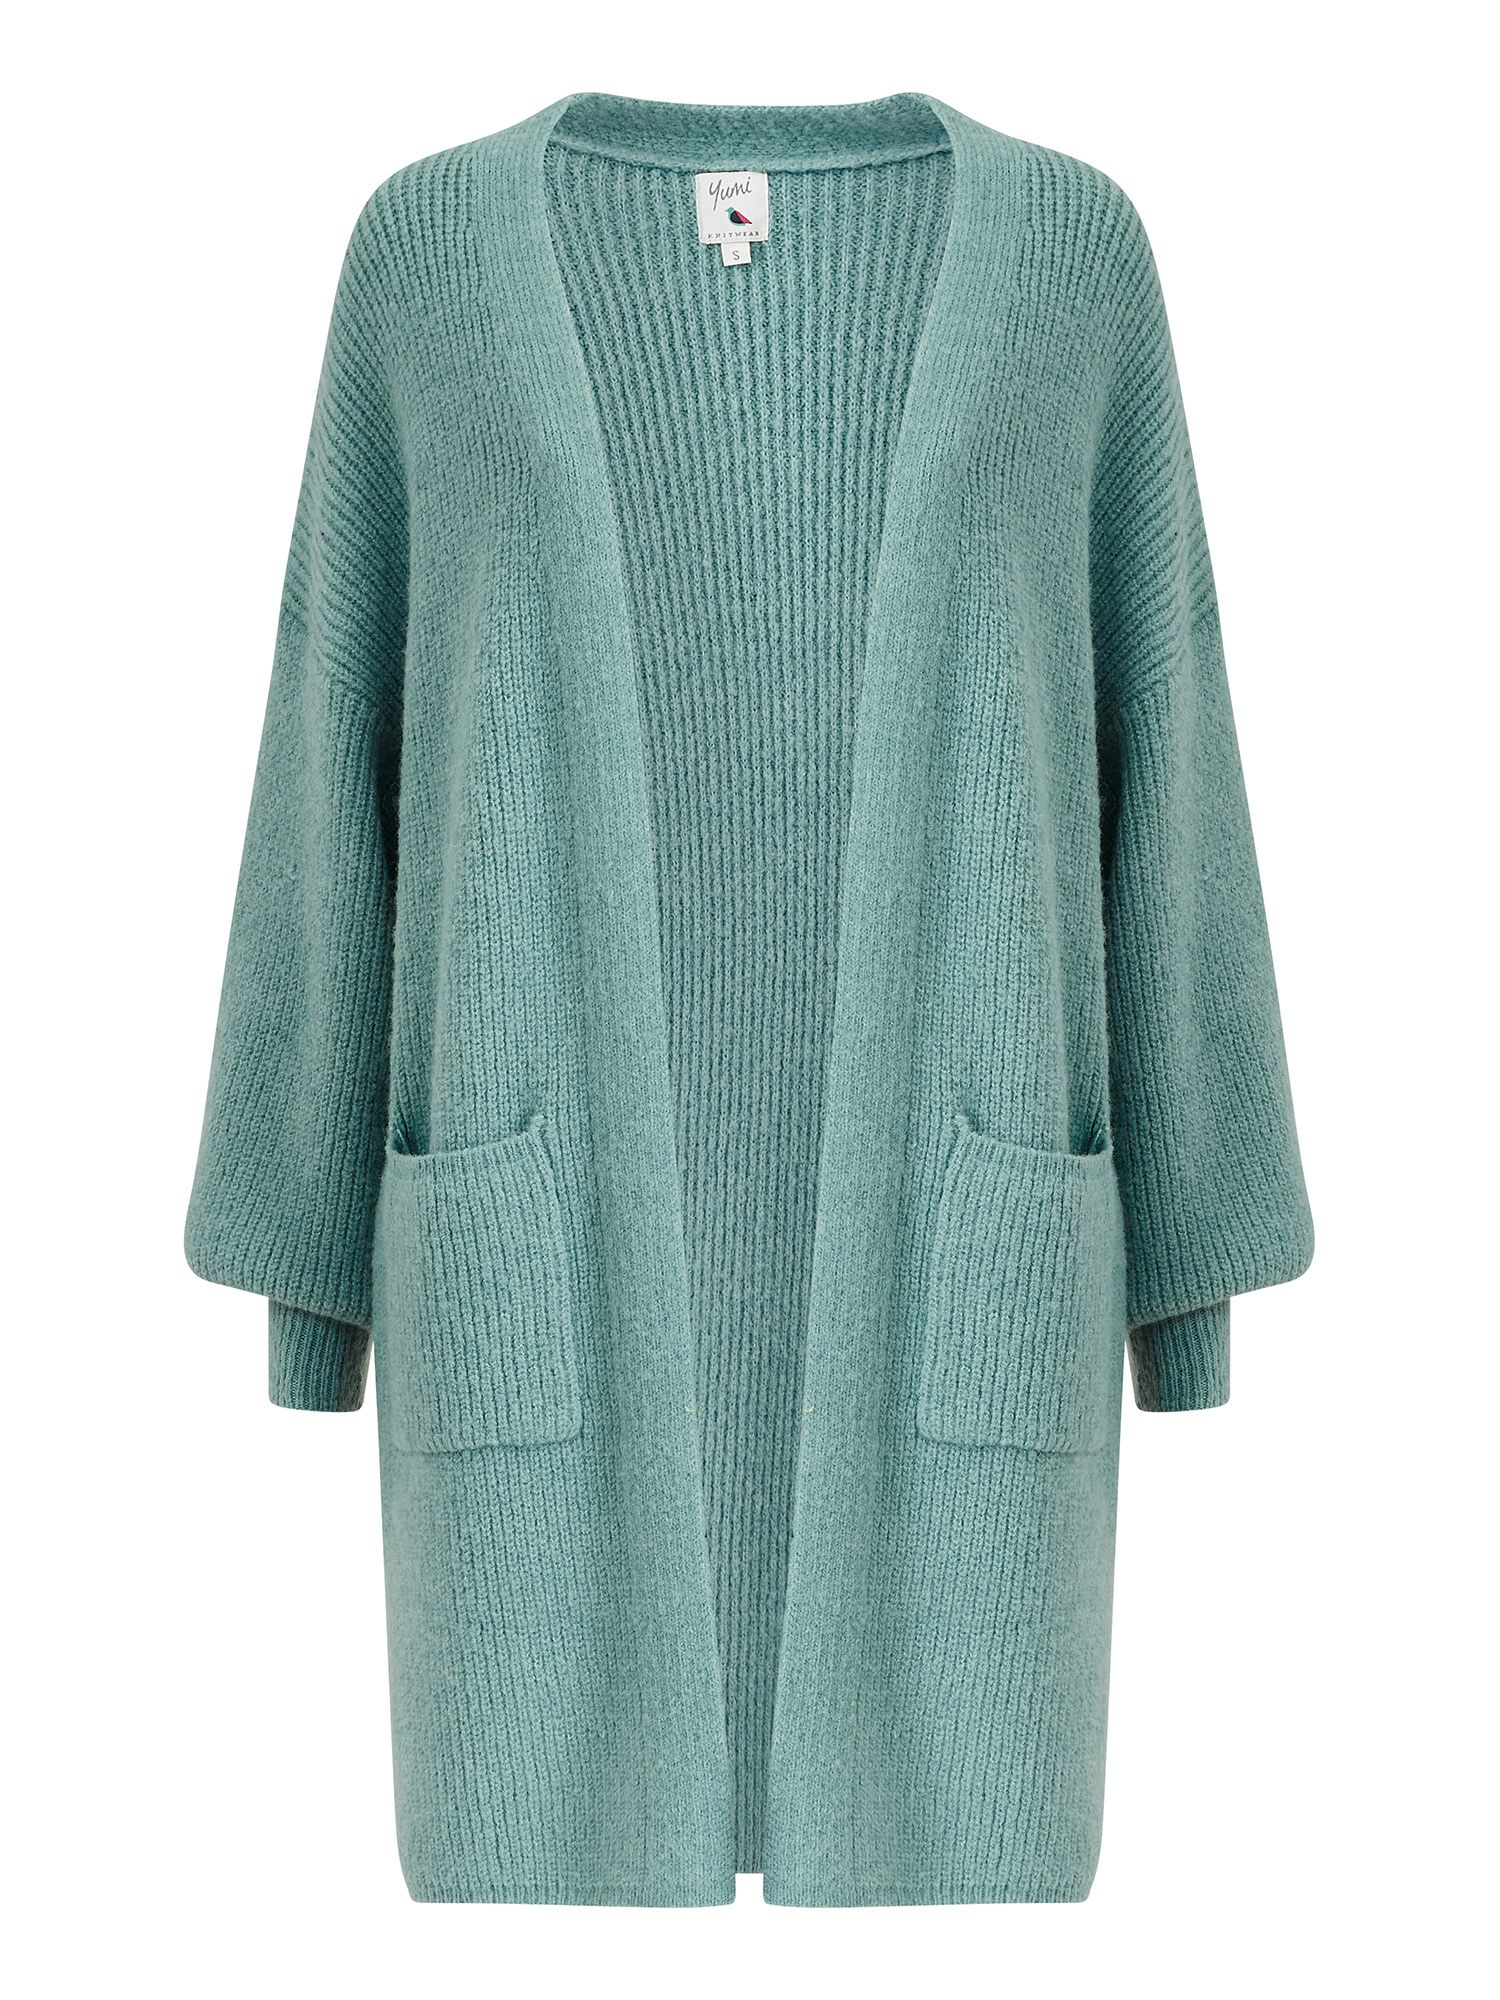 Yumi Blue Knitted Long Cardigan With Pocket D